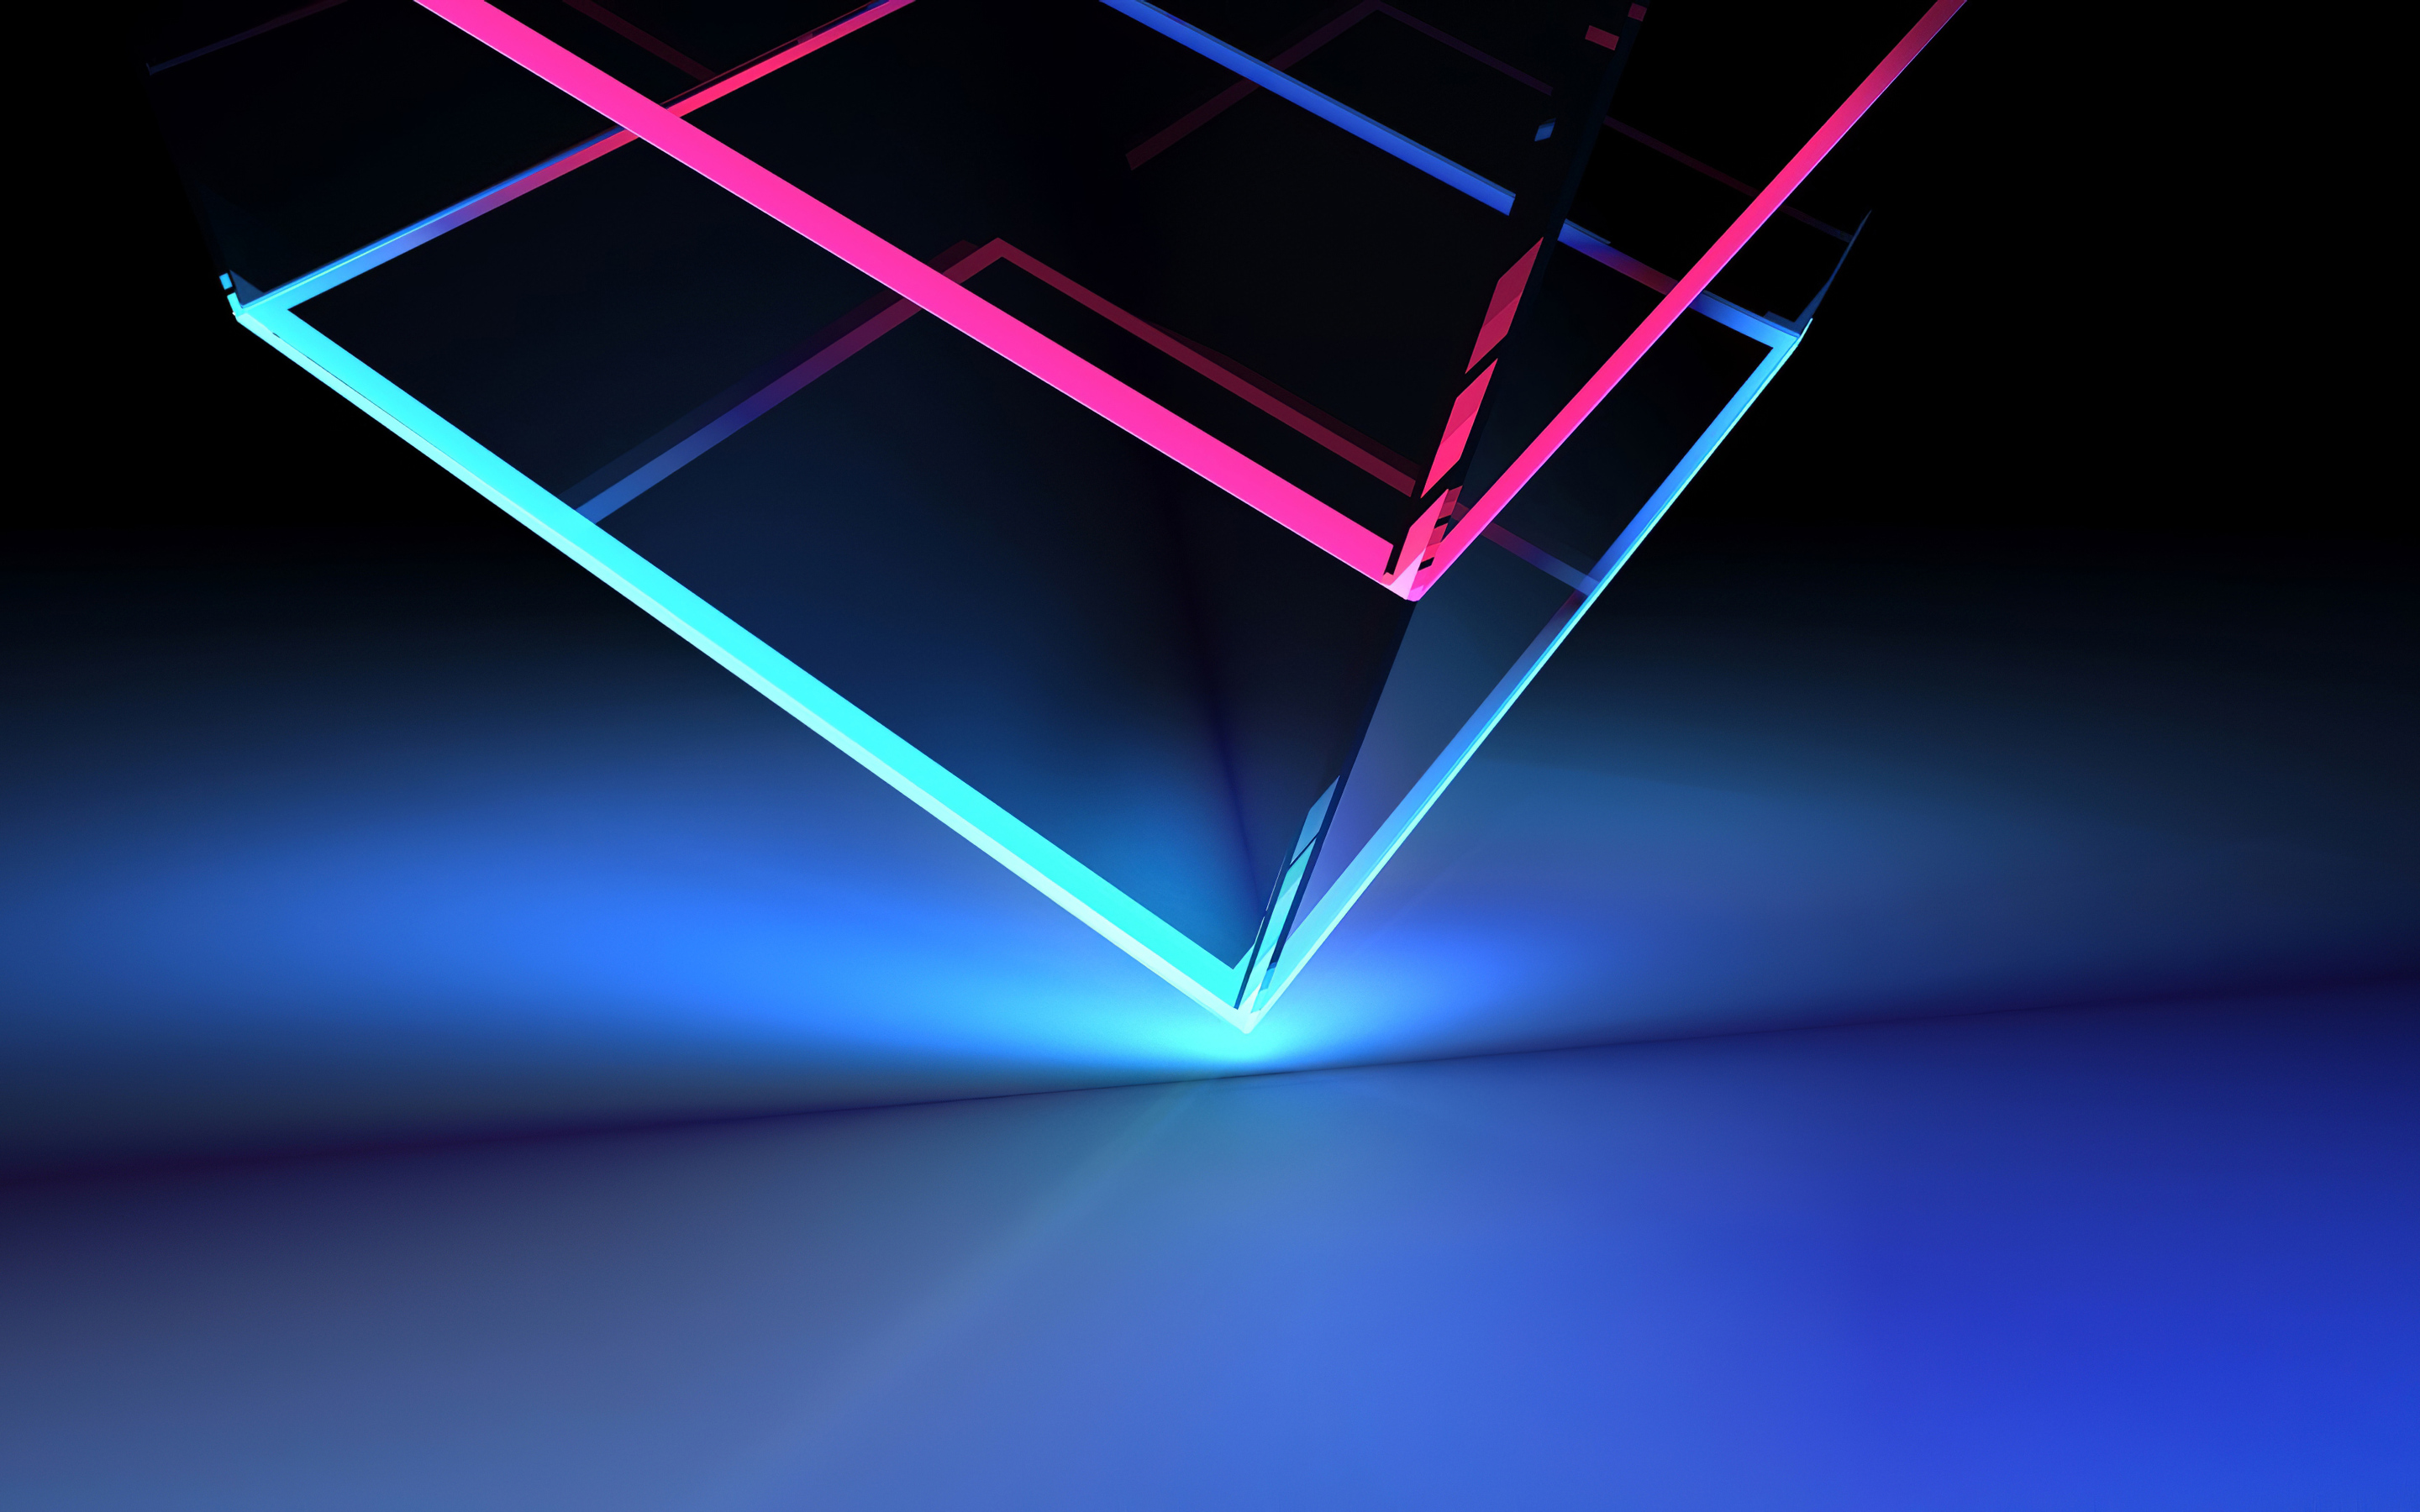 neon-cube-abstract-shapes-4k-3m.jpg